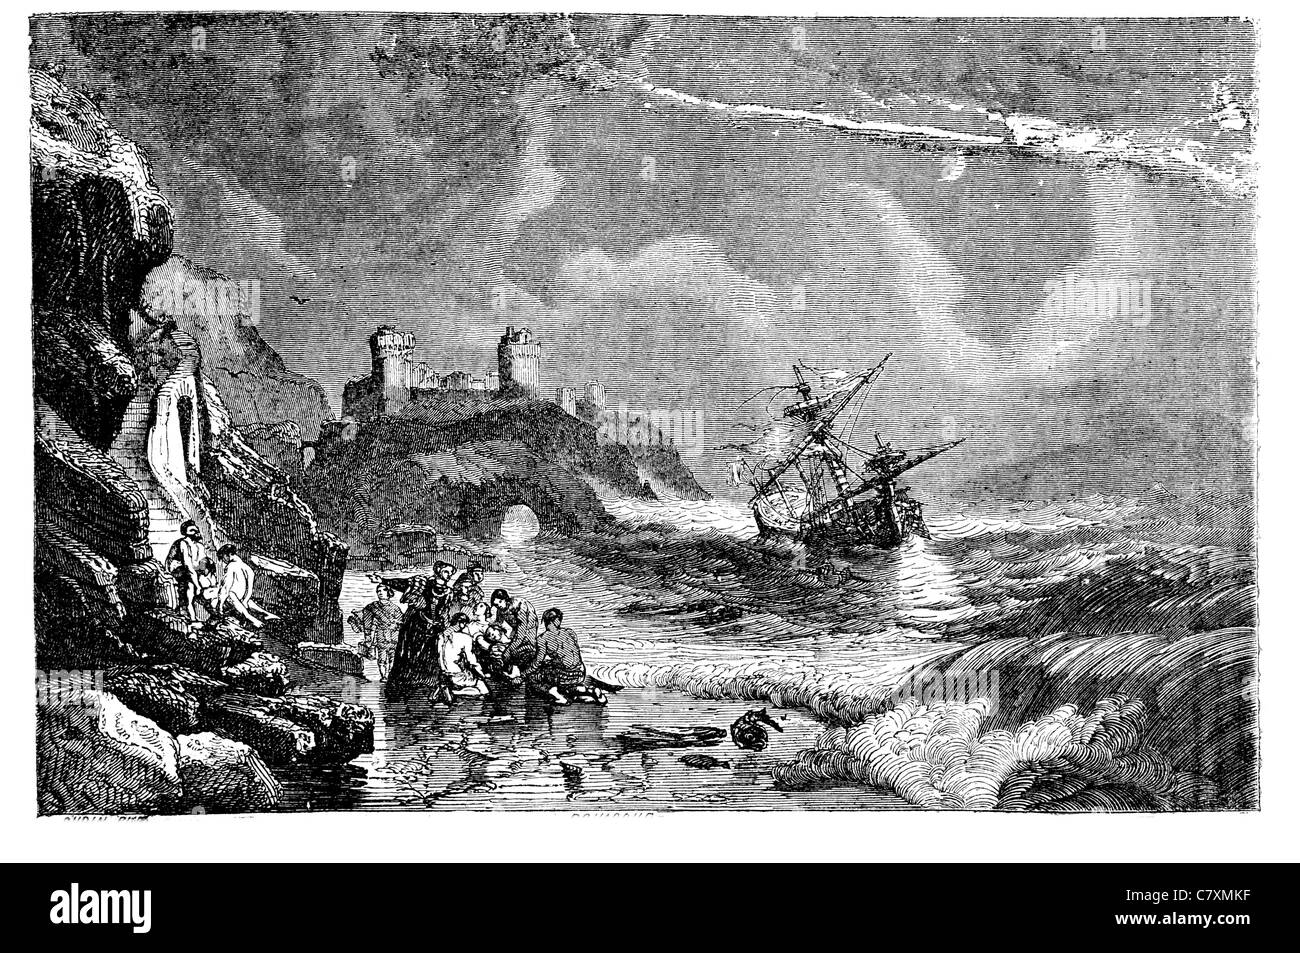 Wreck wrecked Armada ship Coast Irish Ireland storm castle Shipwreck rescued launched rescuing rescue saved save - Stock Image